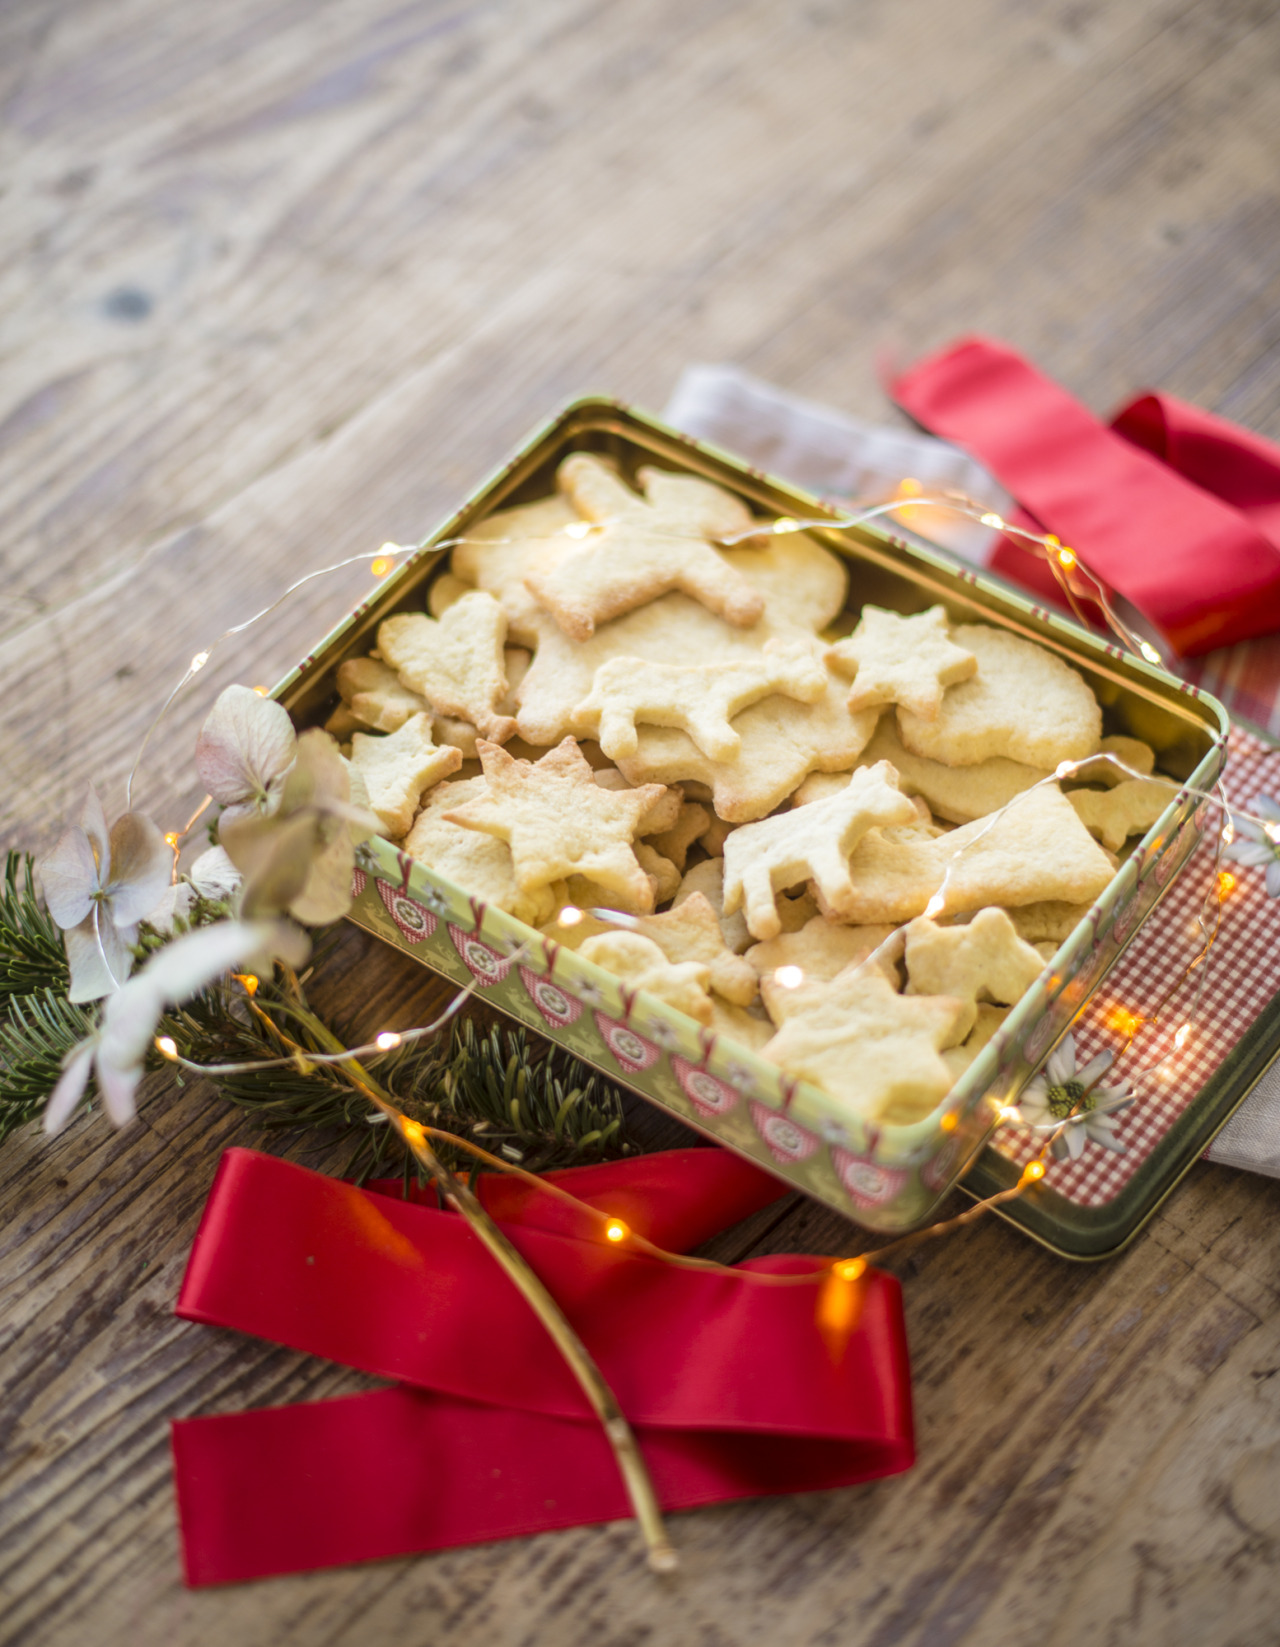 merry christmas everyone! make yourself comfortable with some christmas cookie cutters